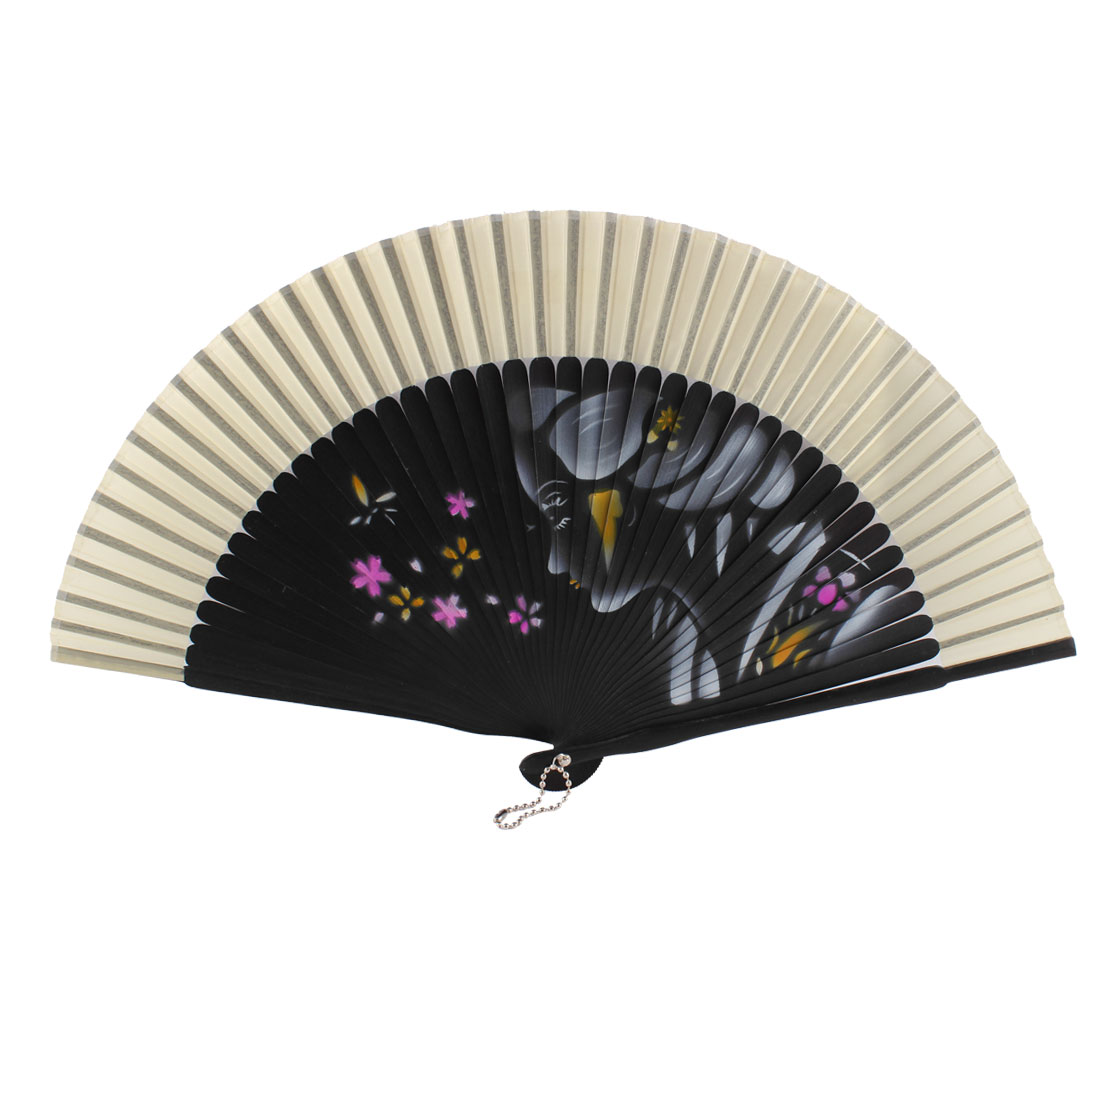 Summer Wedding Dancing Party Girl Flower Pattern Nylon Bamboo Rib Folded Hand Fan Gift Decoration Beige Black